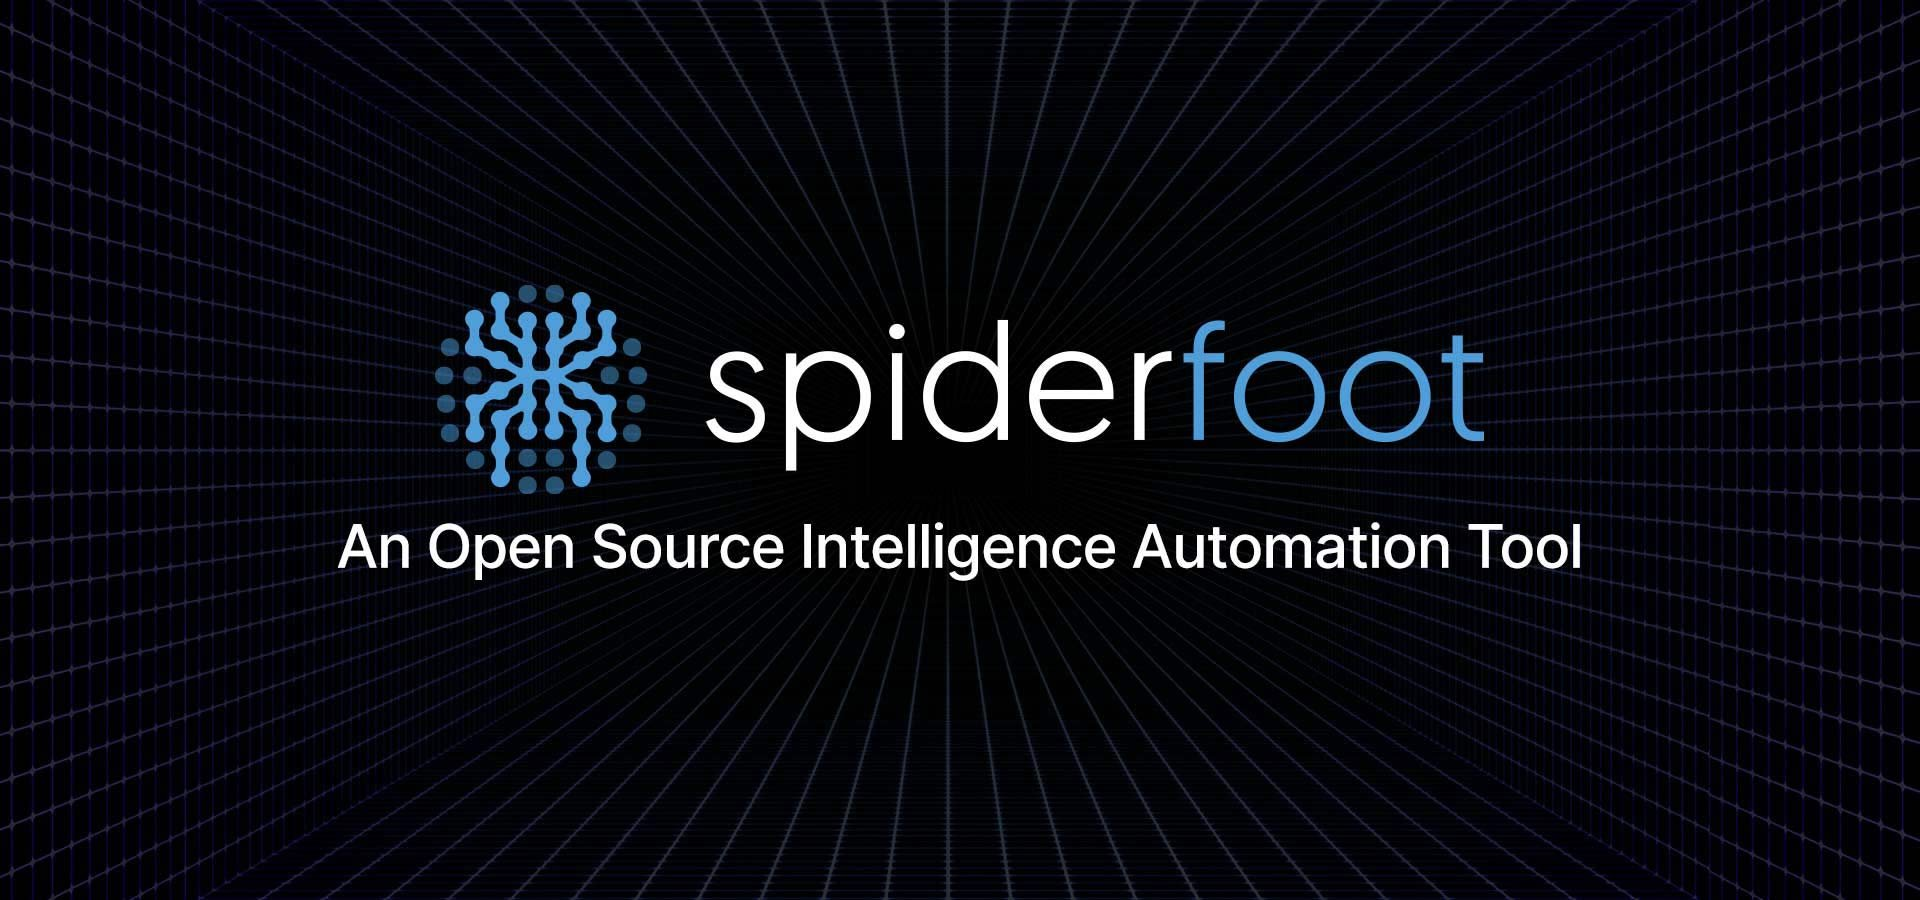 Spiderfoot An Open Source Intelligence Automation Tool